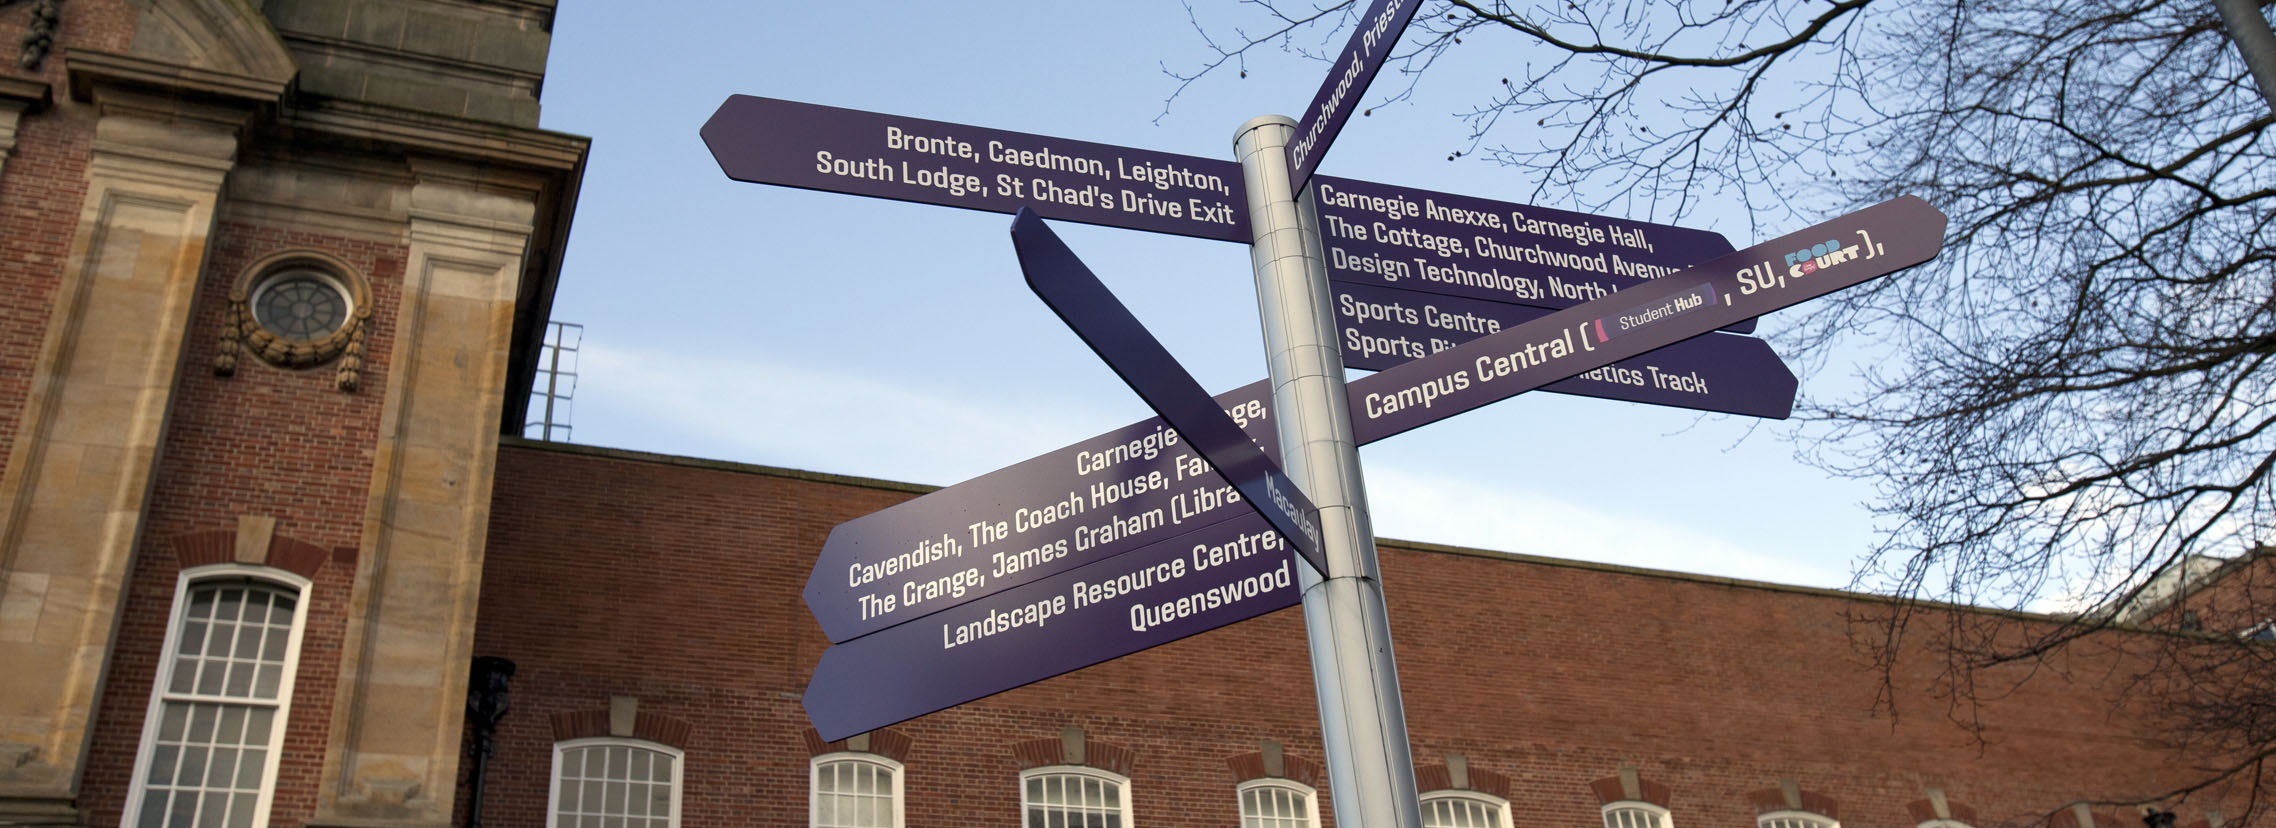 Directions signpost